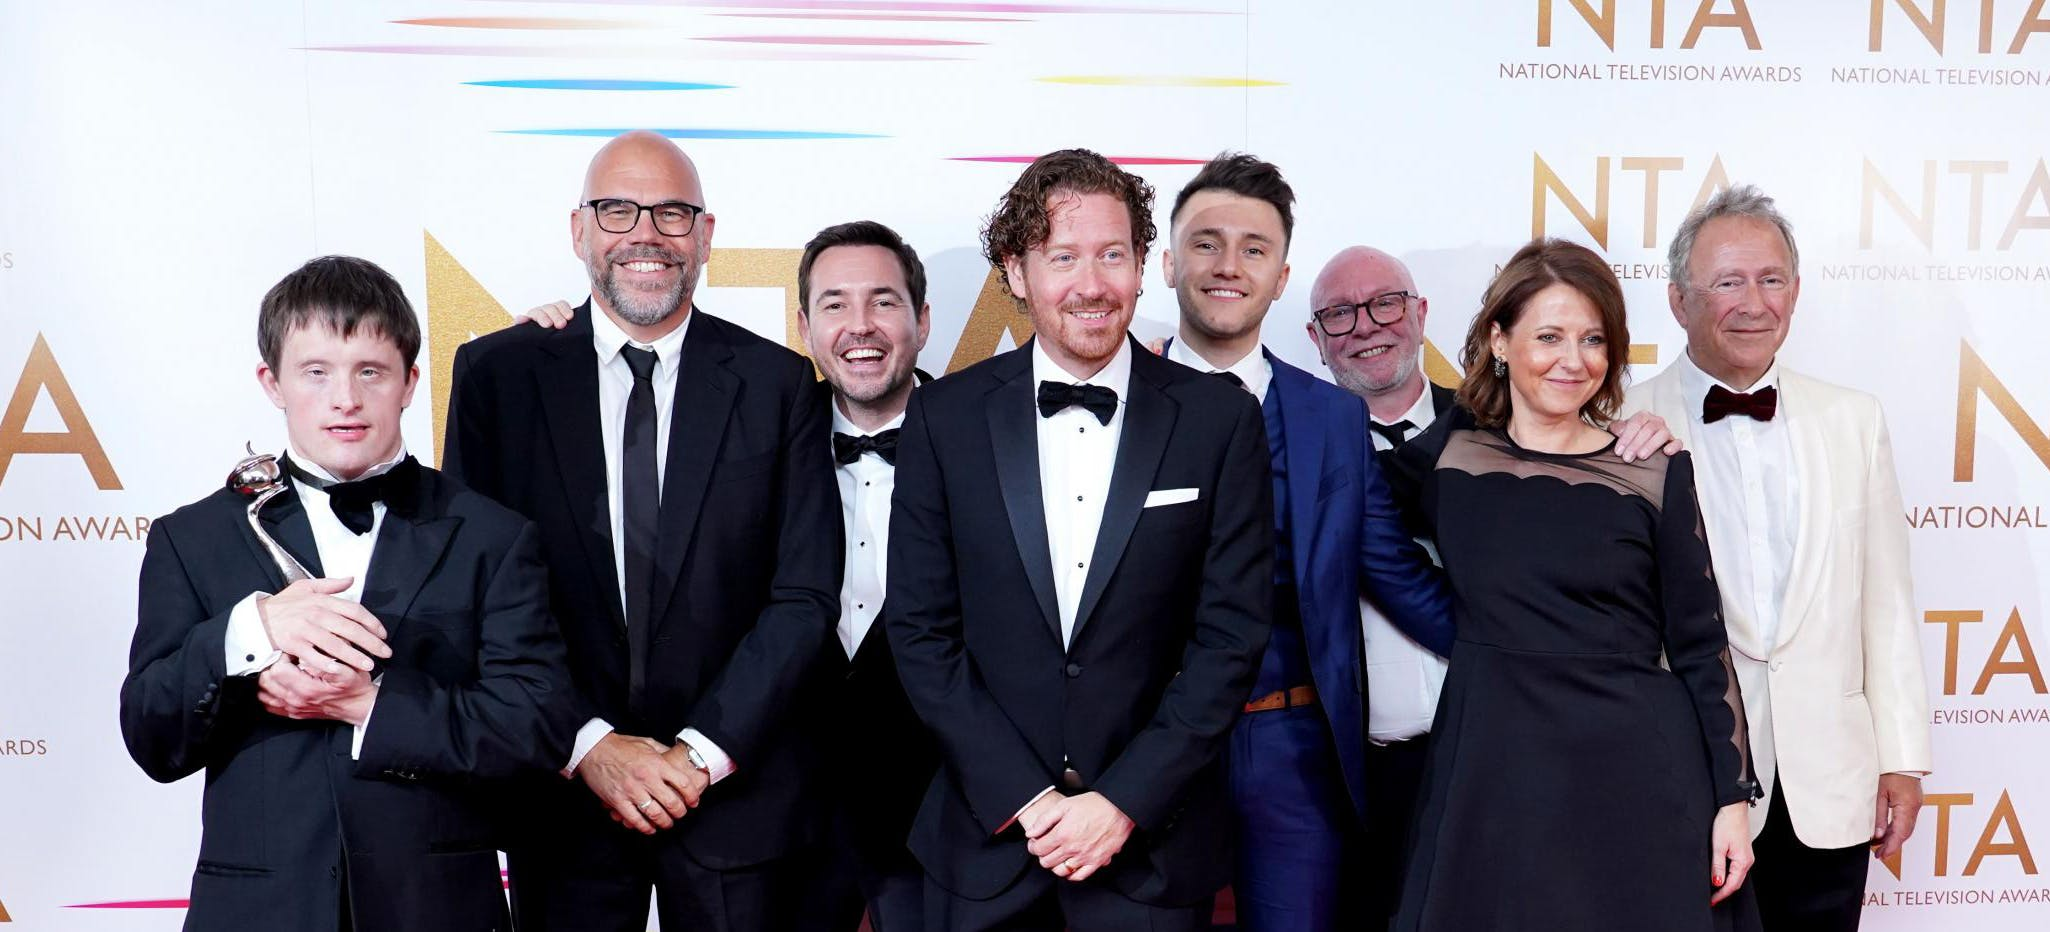 Image of Line of Duty cast and crew on the red carpet at the National TV Awards following their win for the Special Recognition Award